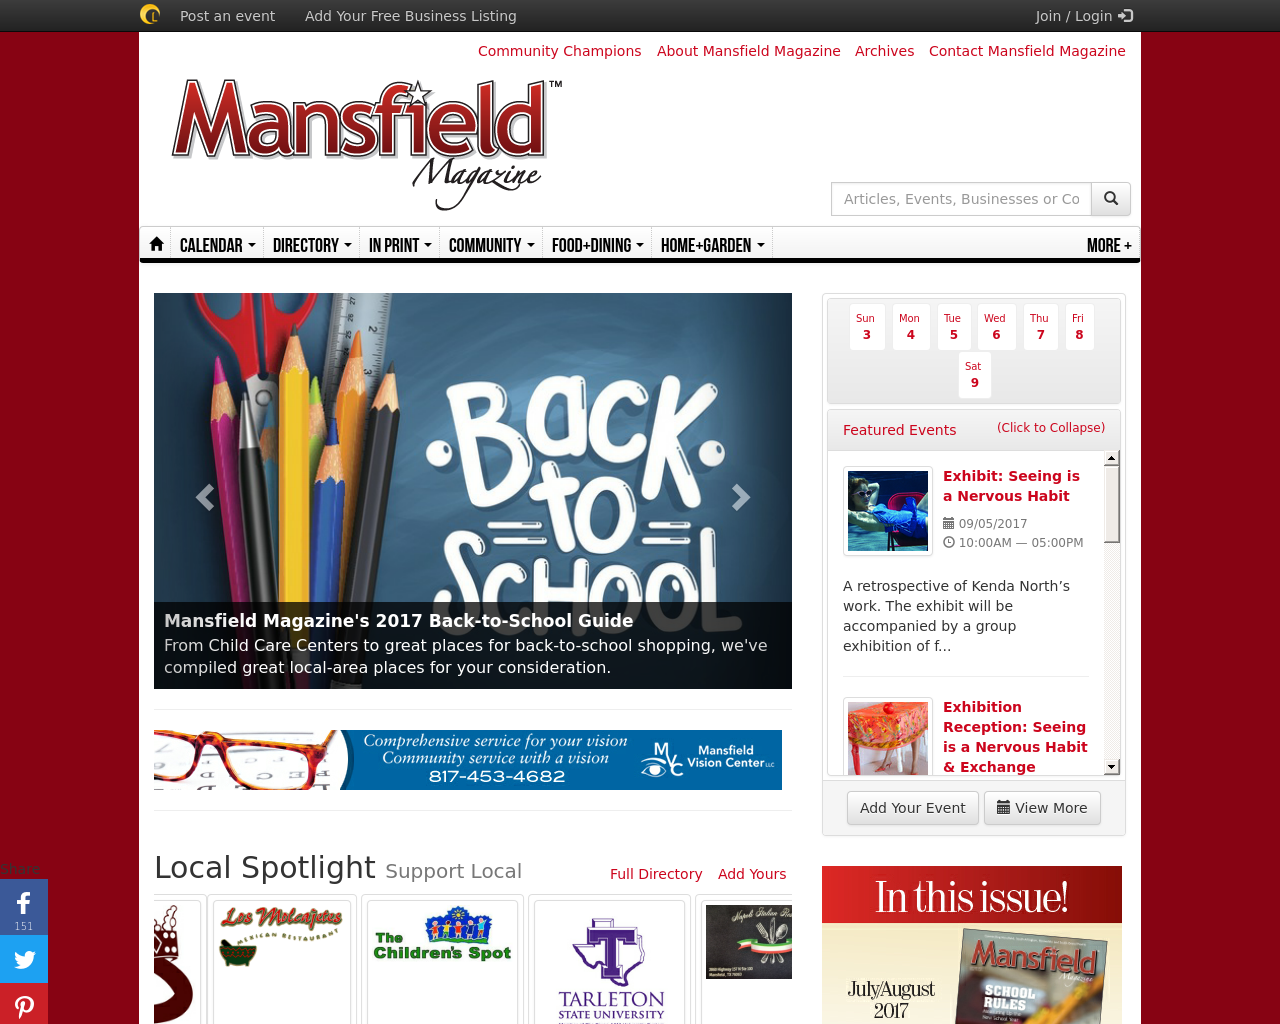 Mansfield-Magazine-Advertising-Reviews-Pricing